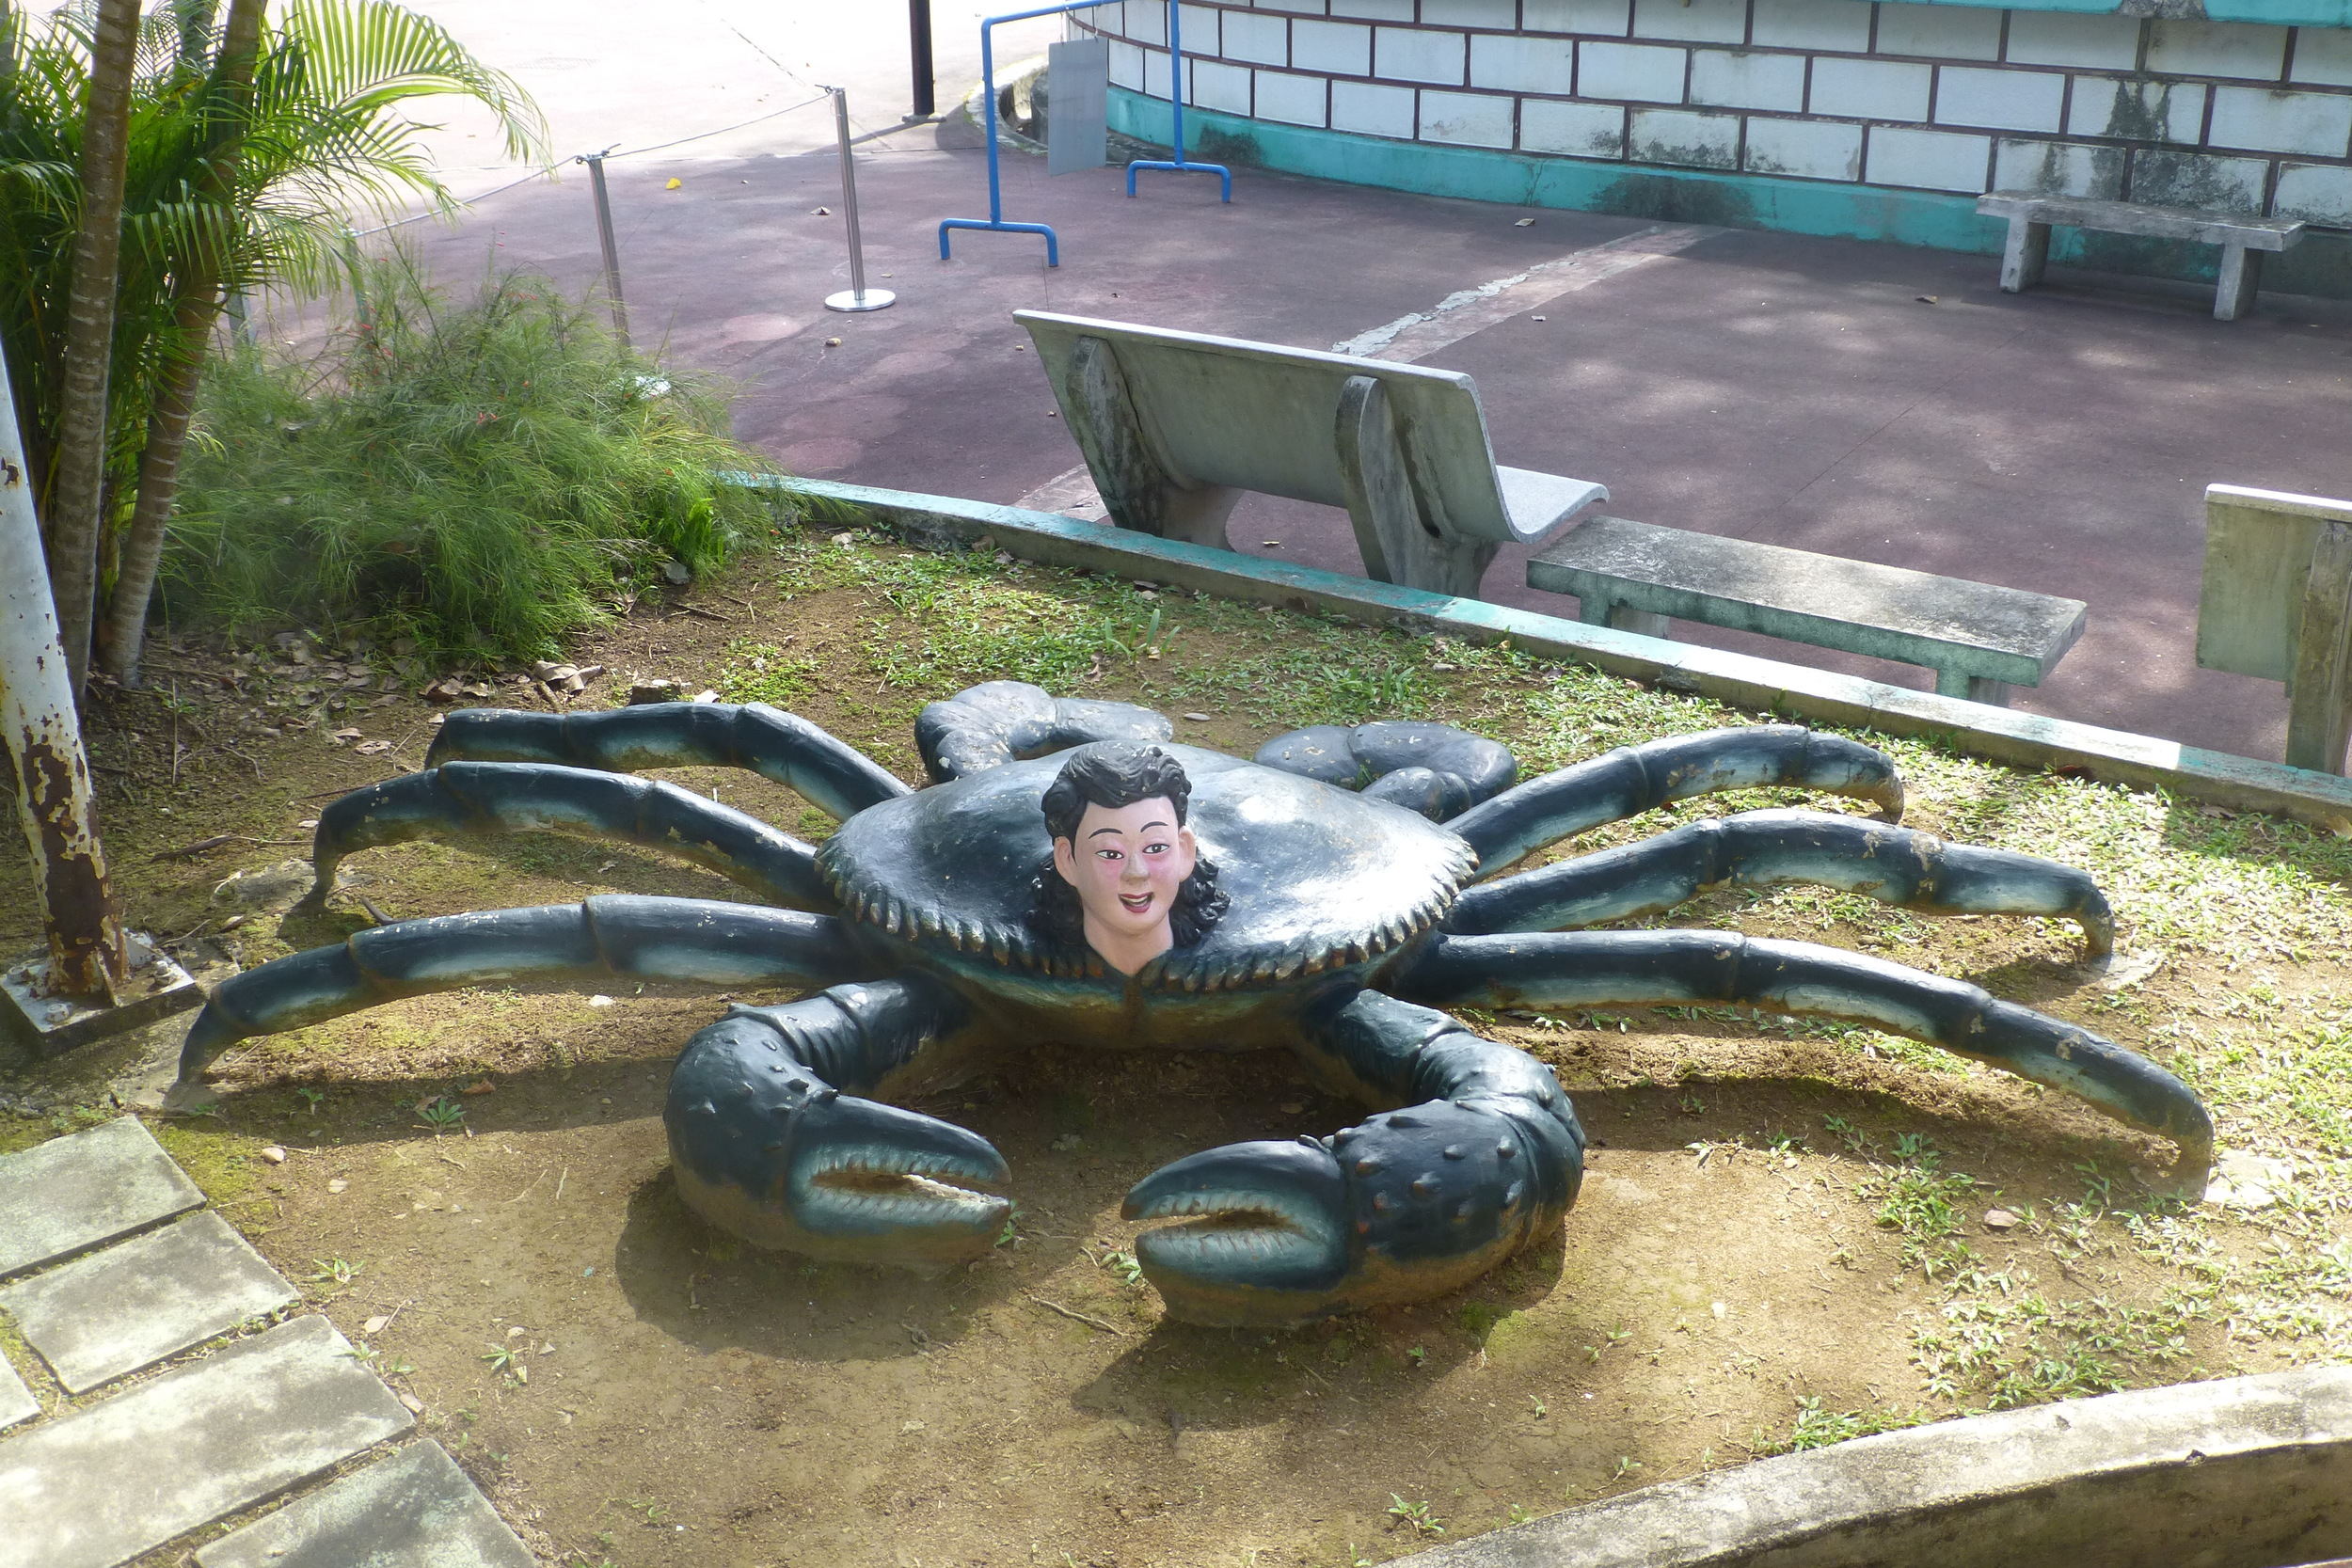 CRAB HEADED BOY - A PERSONAL FAVOURITE